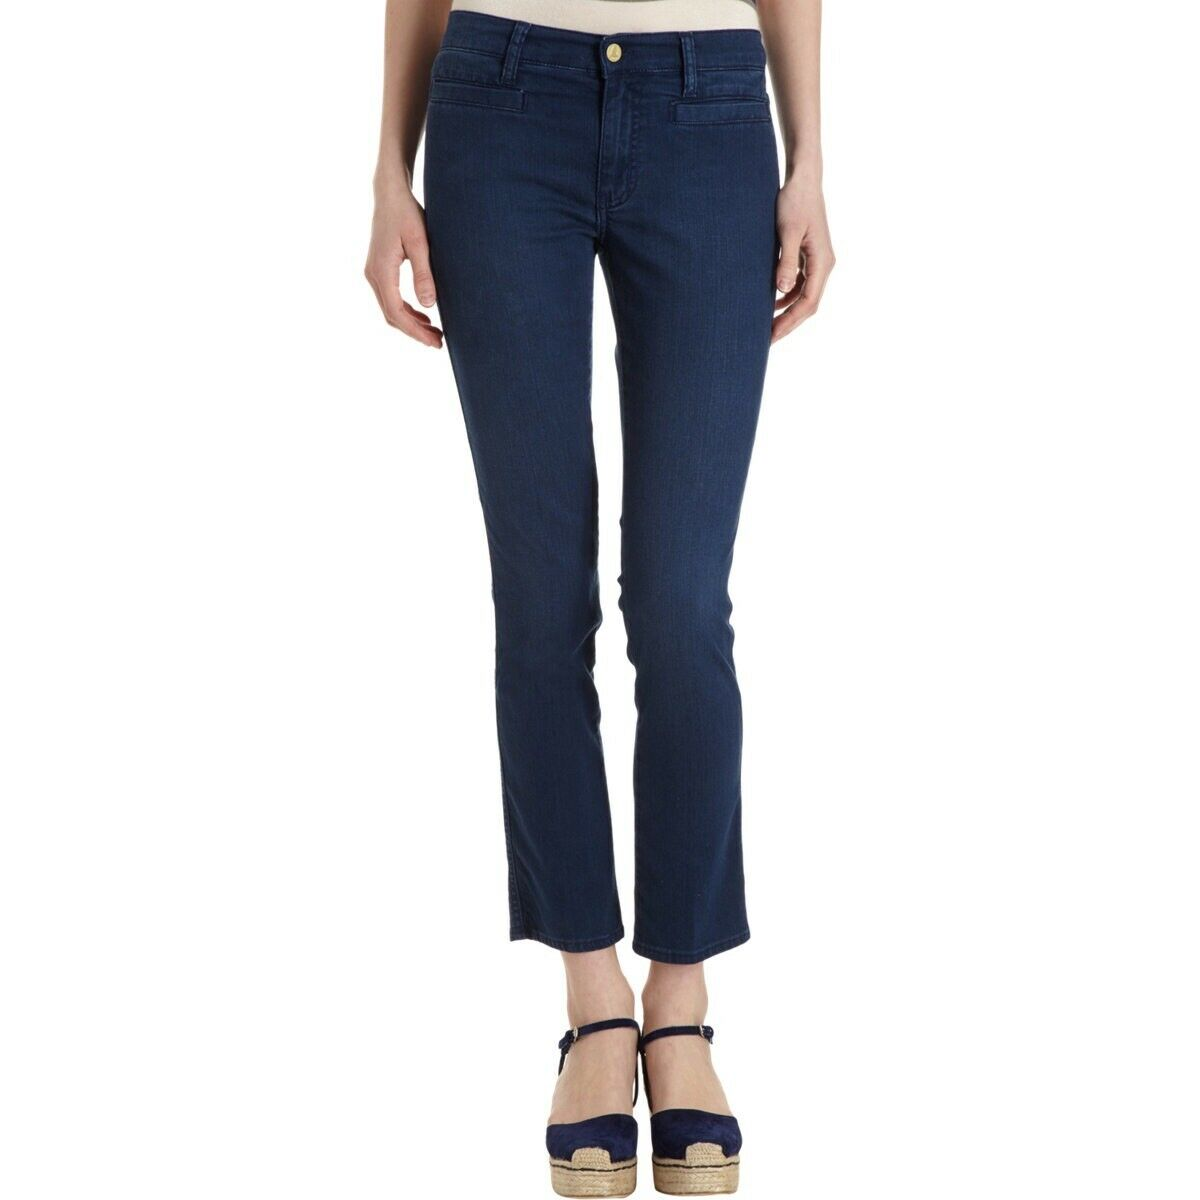 MiH Jeans  The Paris Jean Mid Rise, Cropped Slim Leg In Christie Dark Wash  215